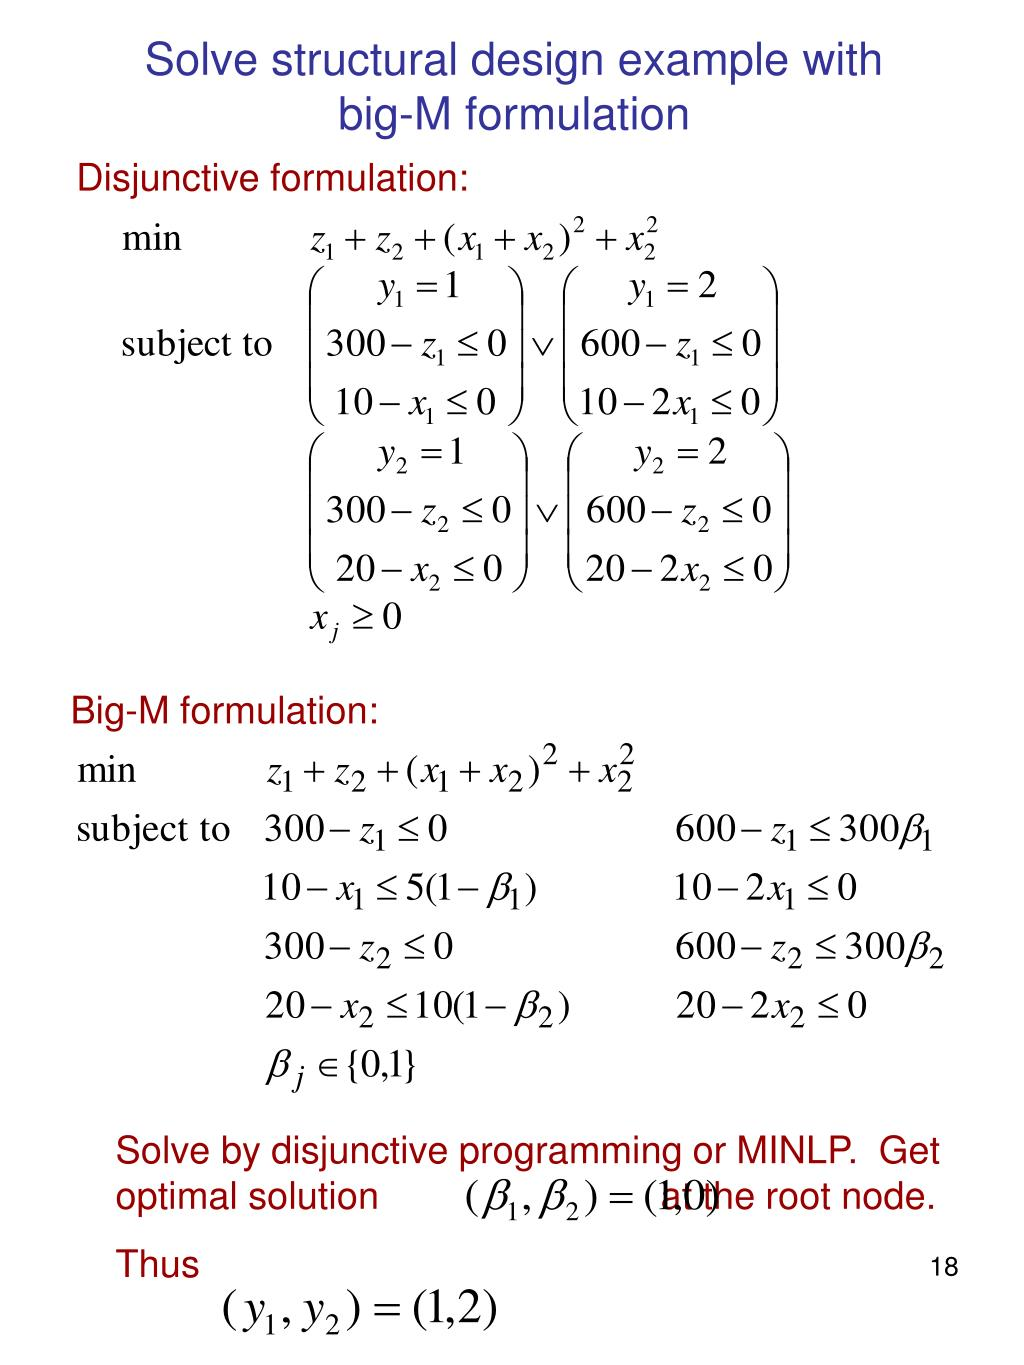 Solve structural design example with big-M formulation